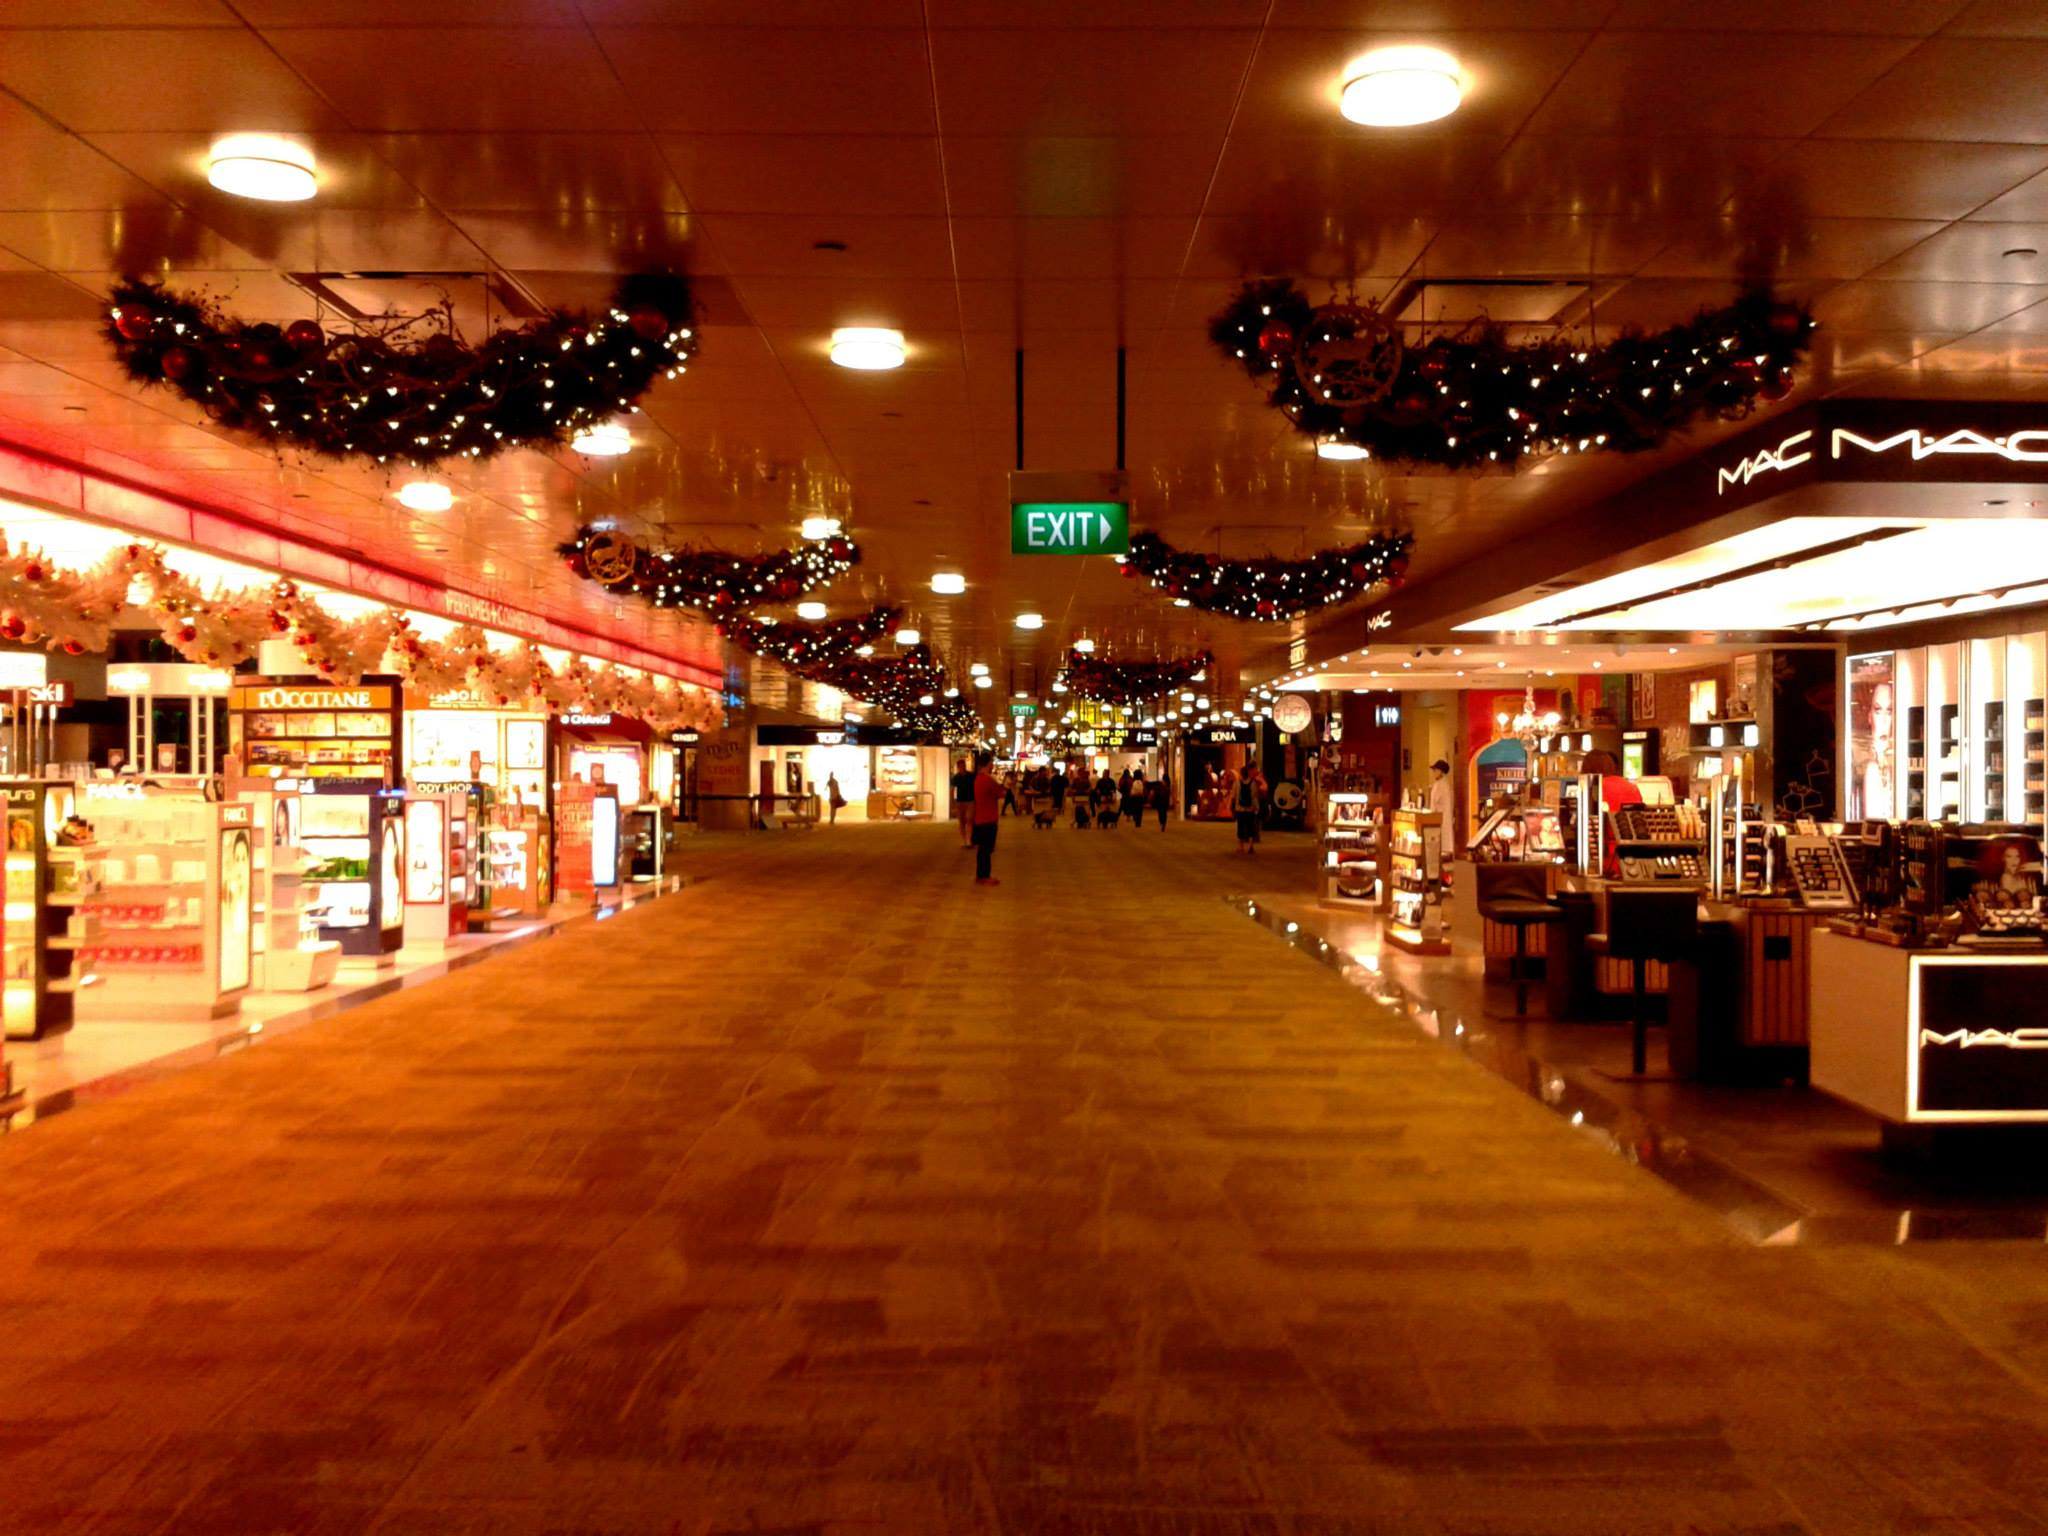 Travel Indonesia Blog: Singapore Airport at Christmas